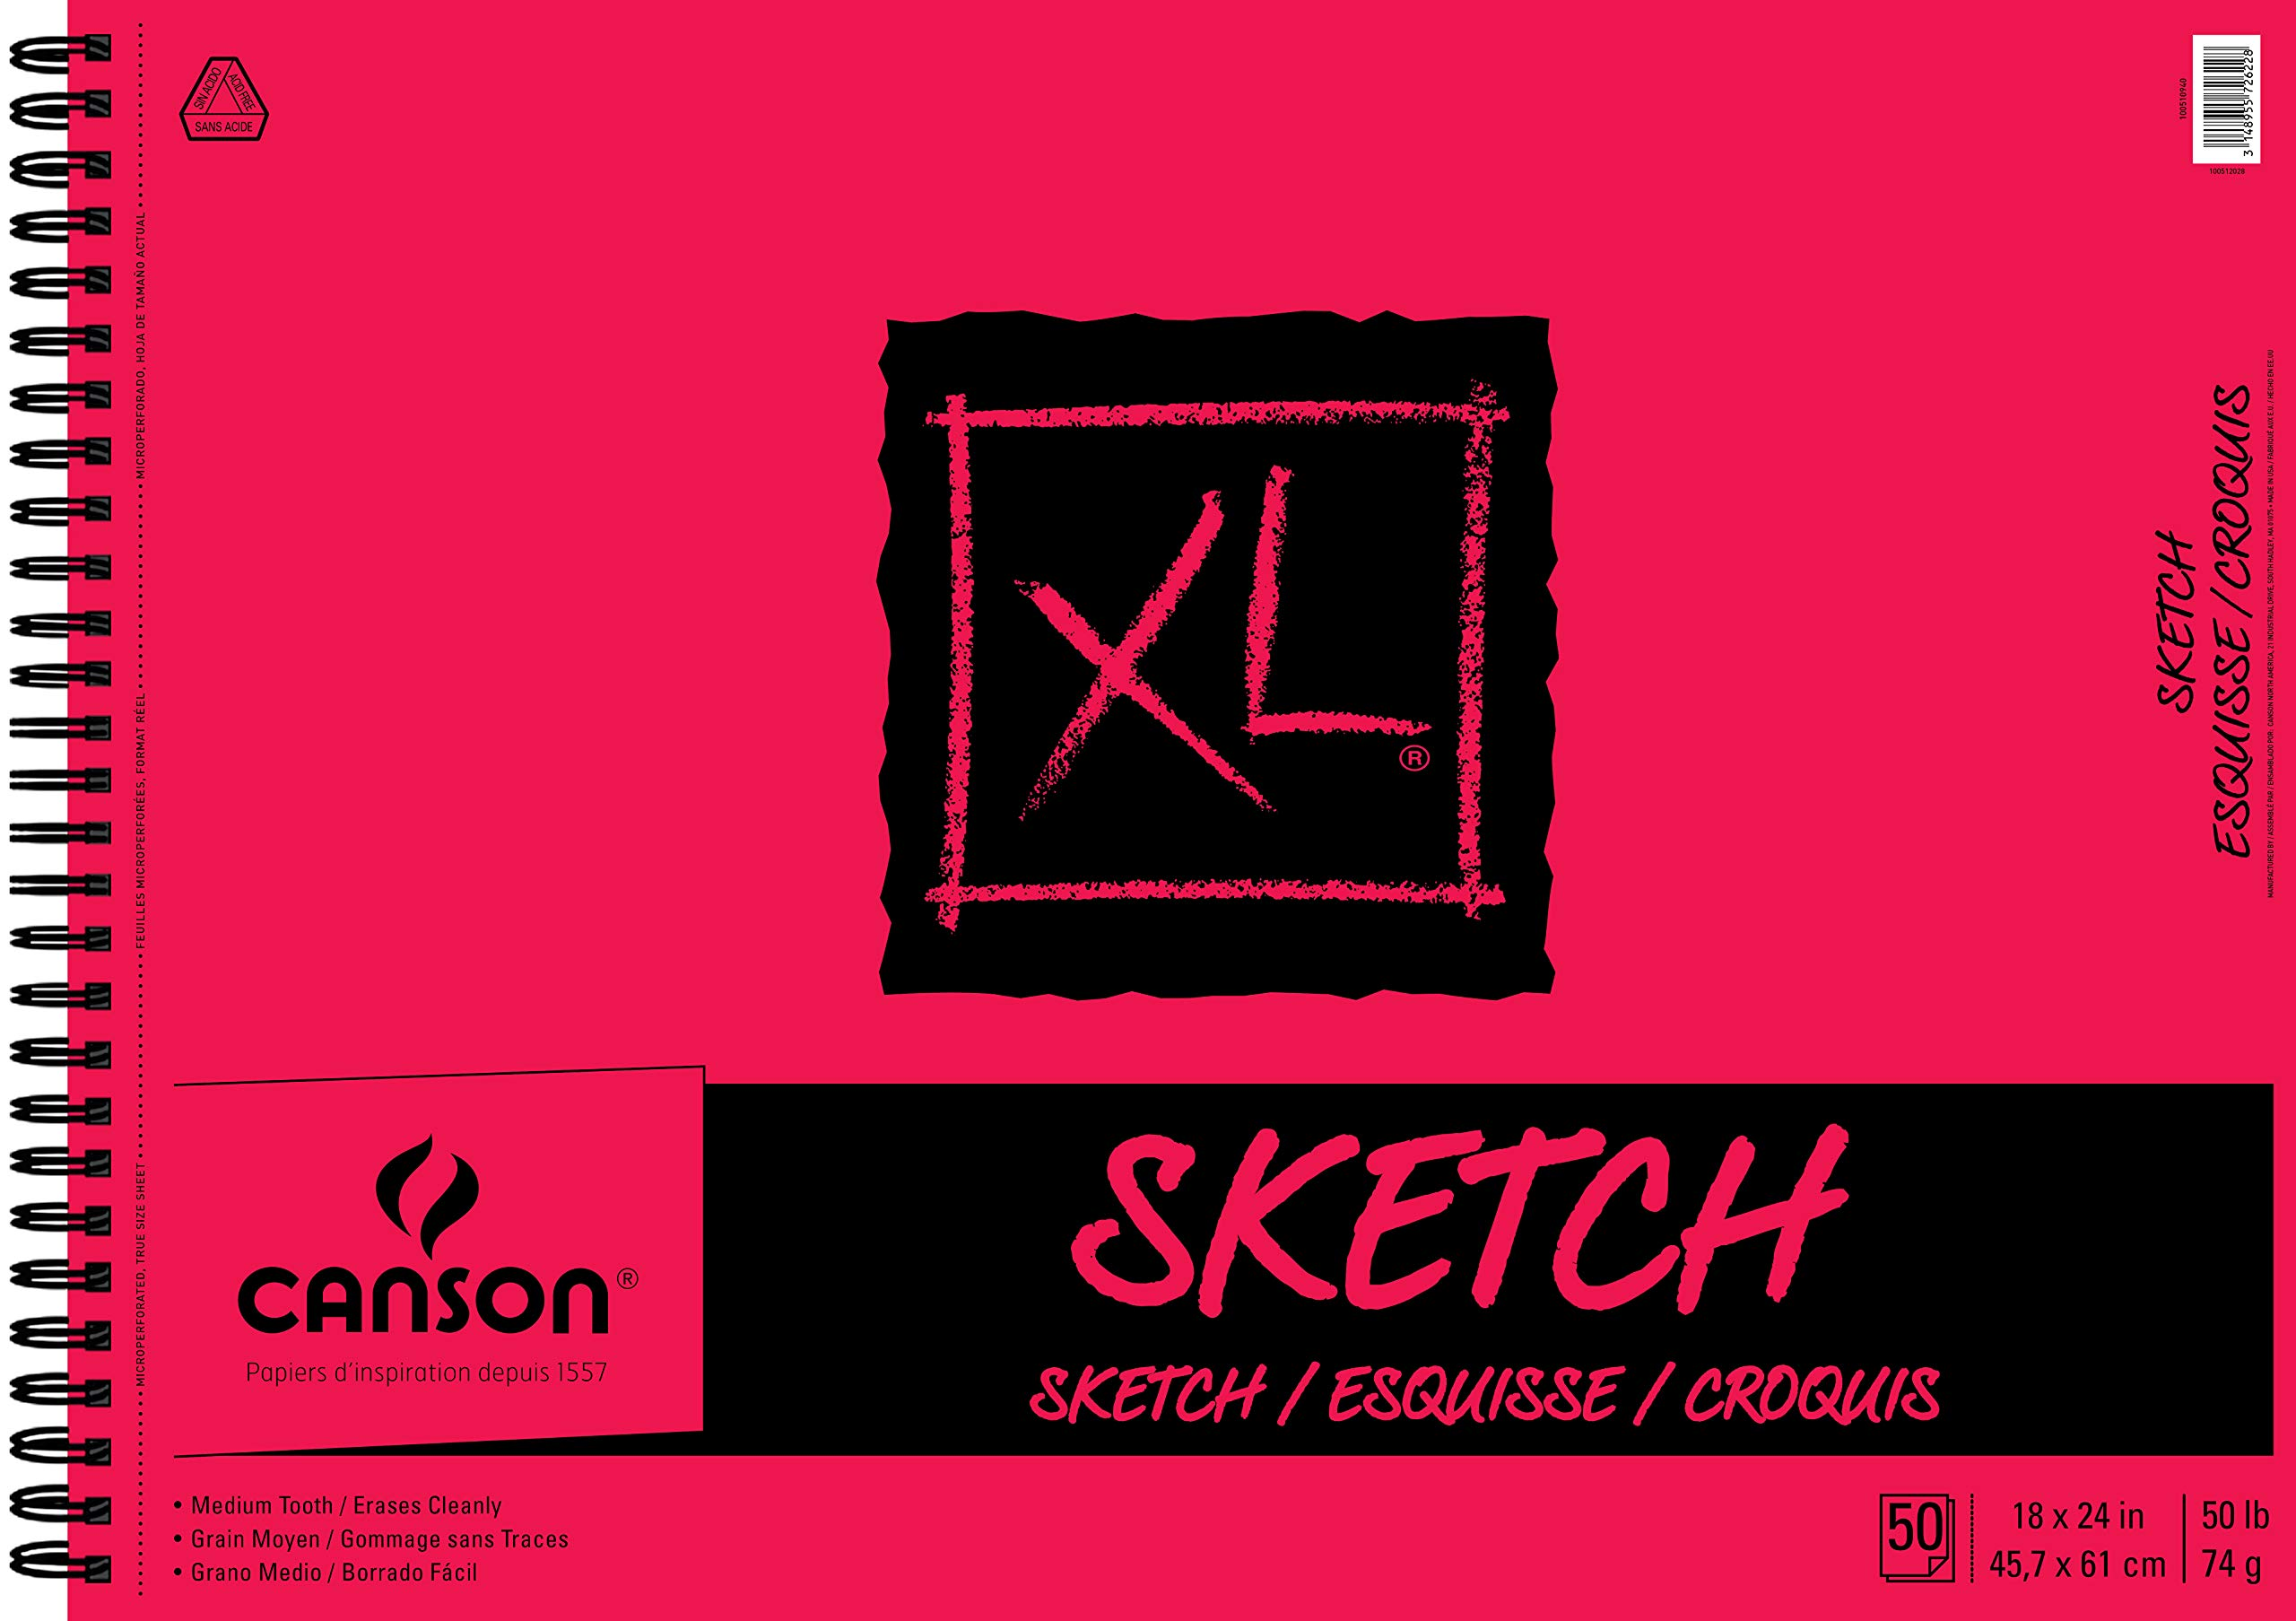 Canson XL Series Paper Sketch Pad for Charcoal, Pencil and Pastel, Side Wire Bound, 50 Pound, 18 x 24 Inch, 50 Sheets by Canson